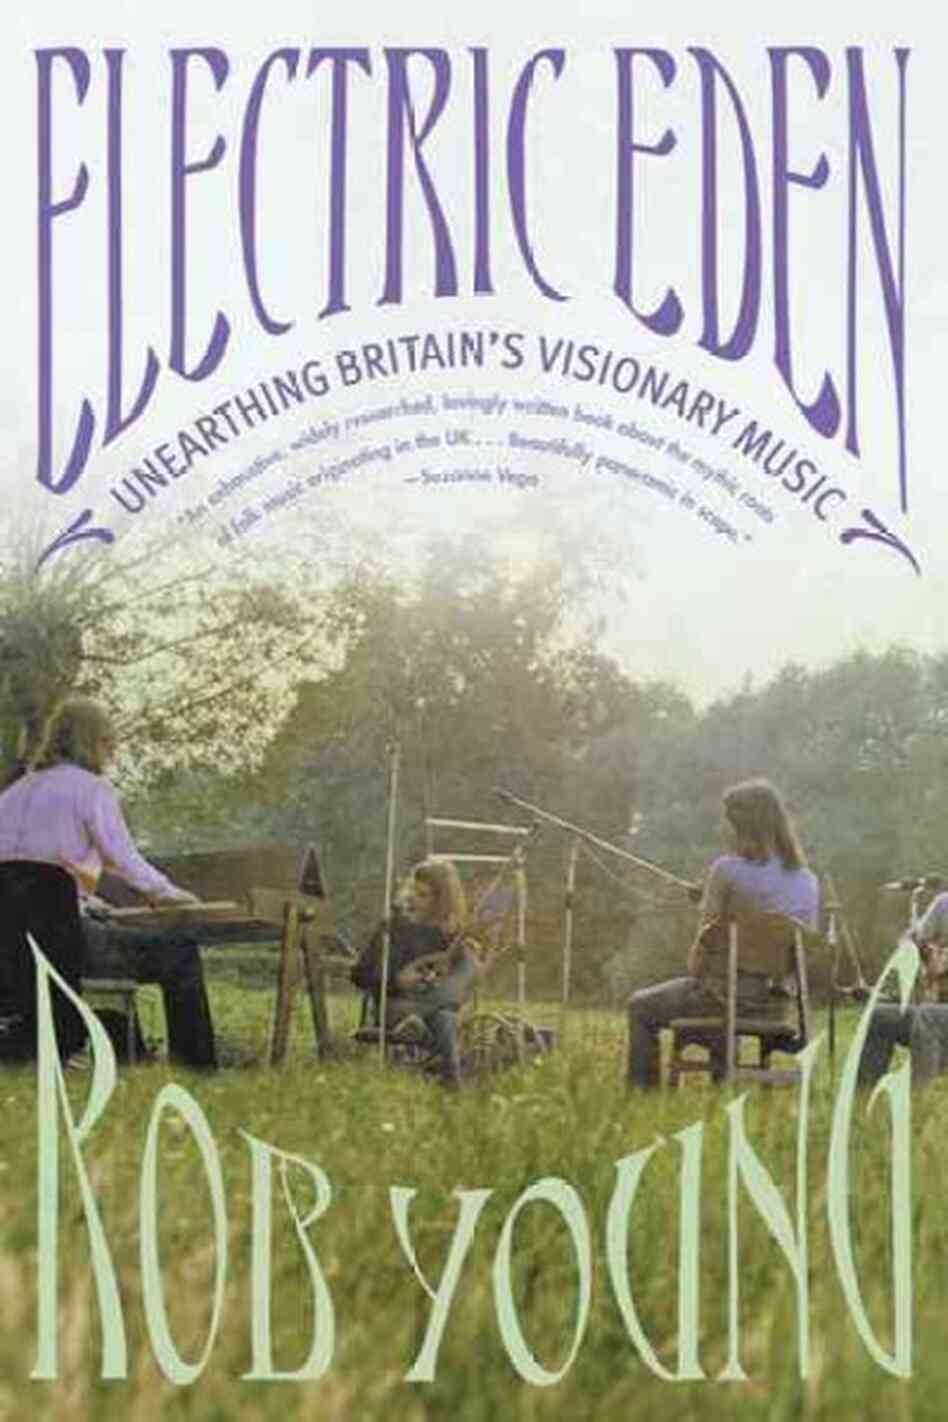 Electric Eden